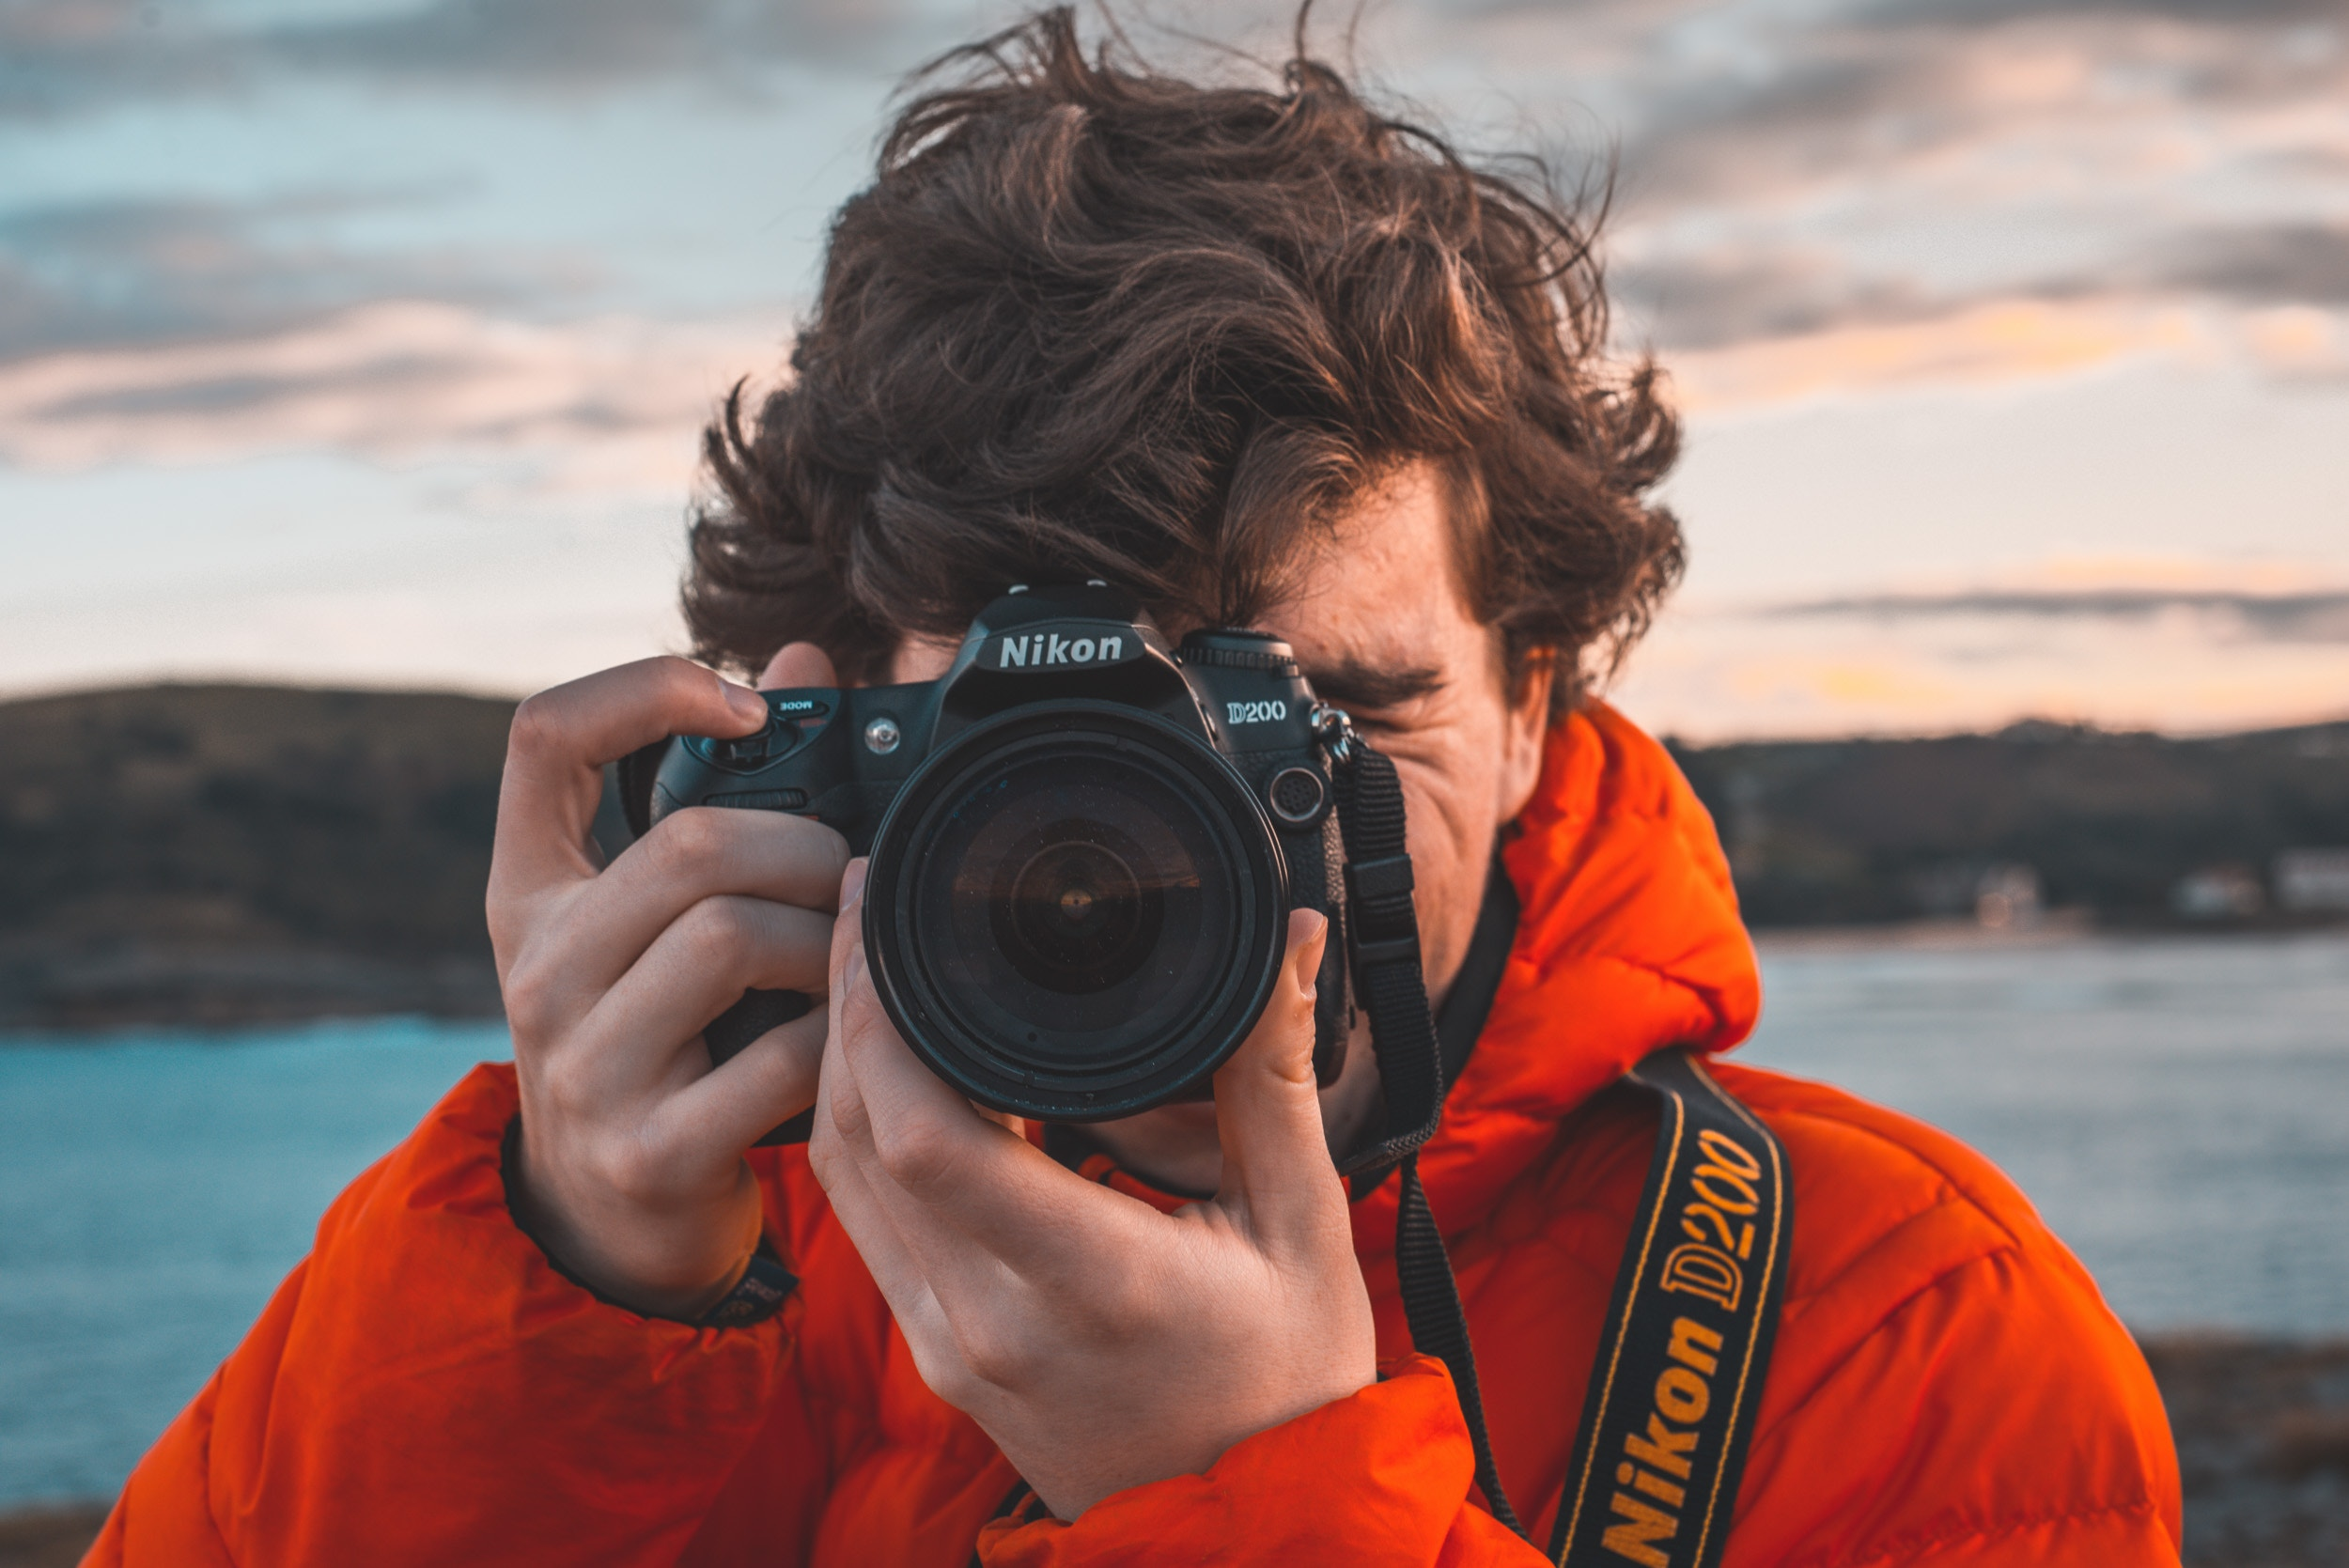 Amateur Photographer Captures Moment Dream Of Being A Photographer Dies